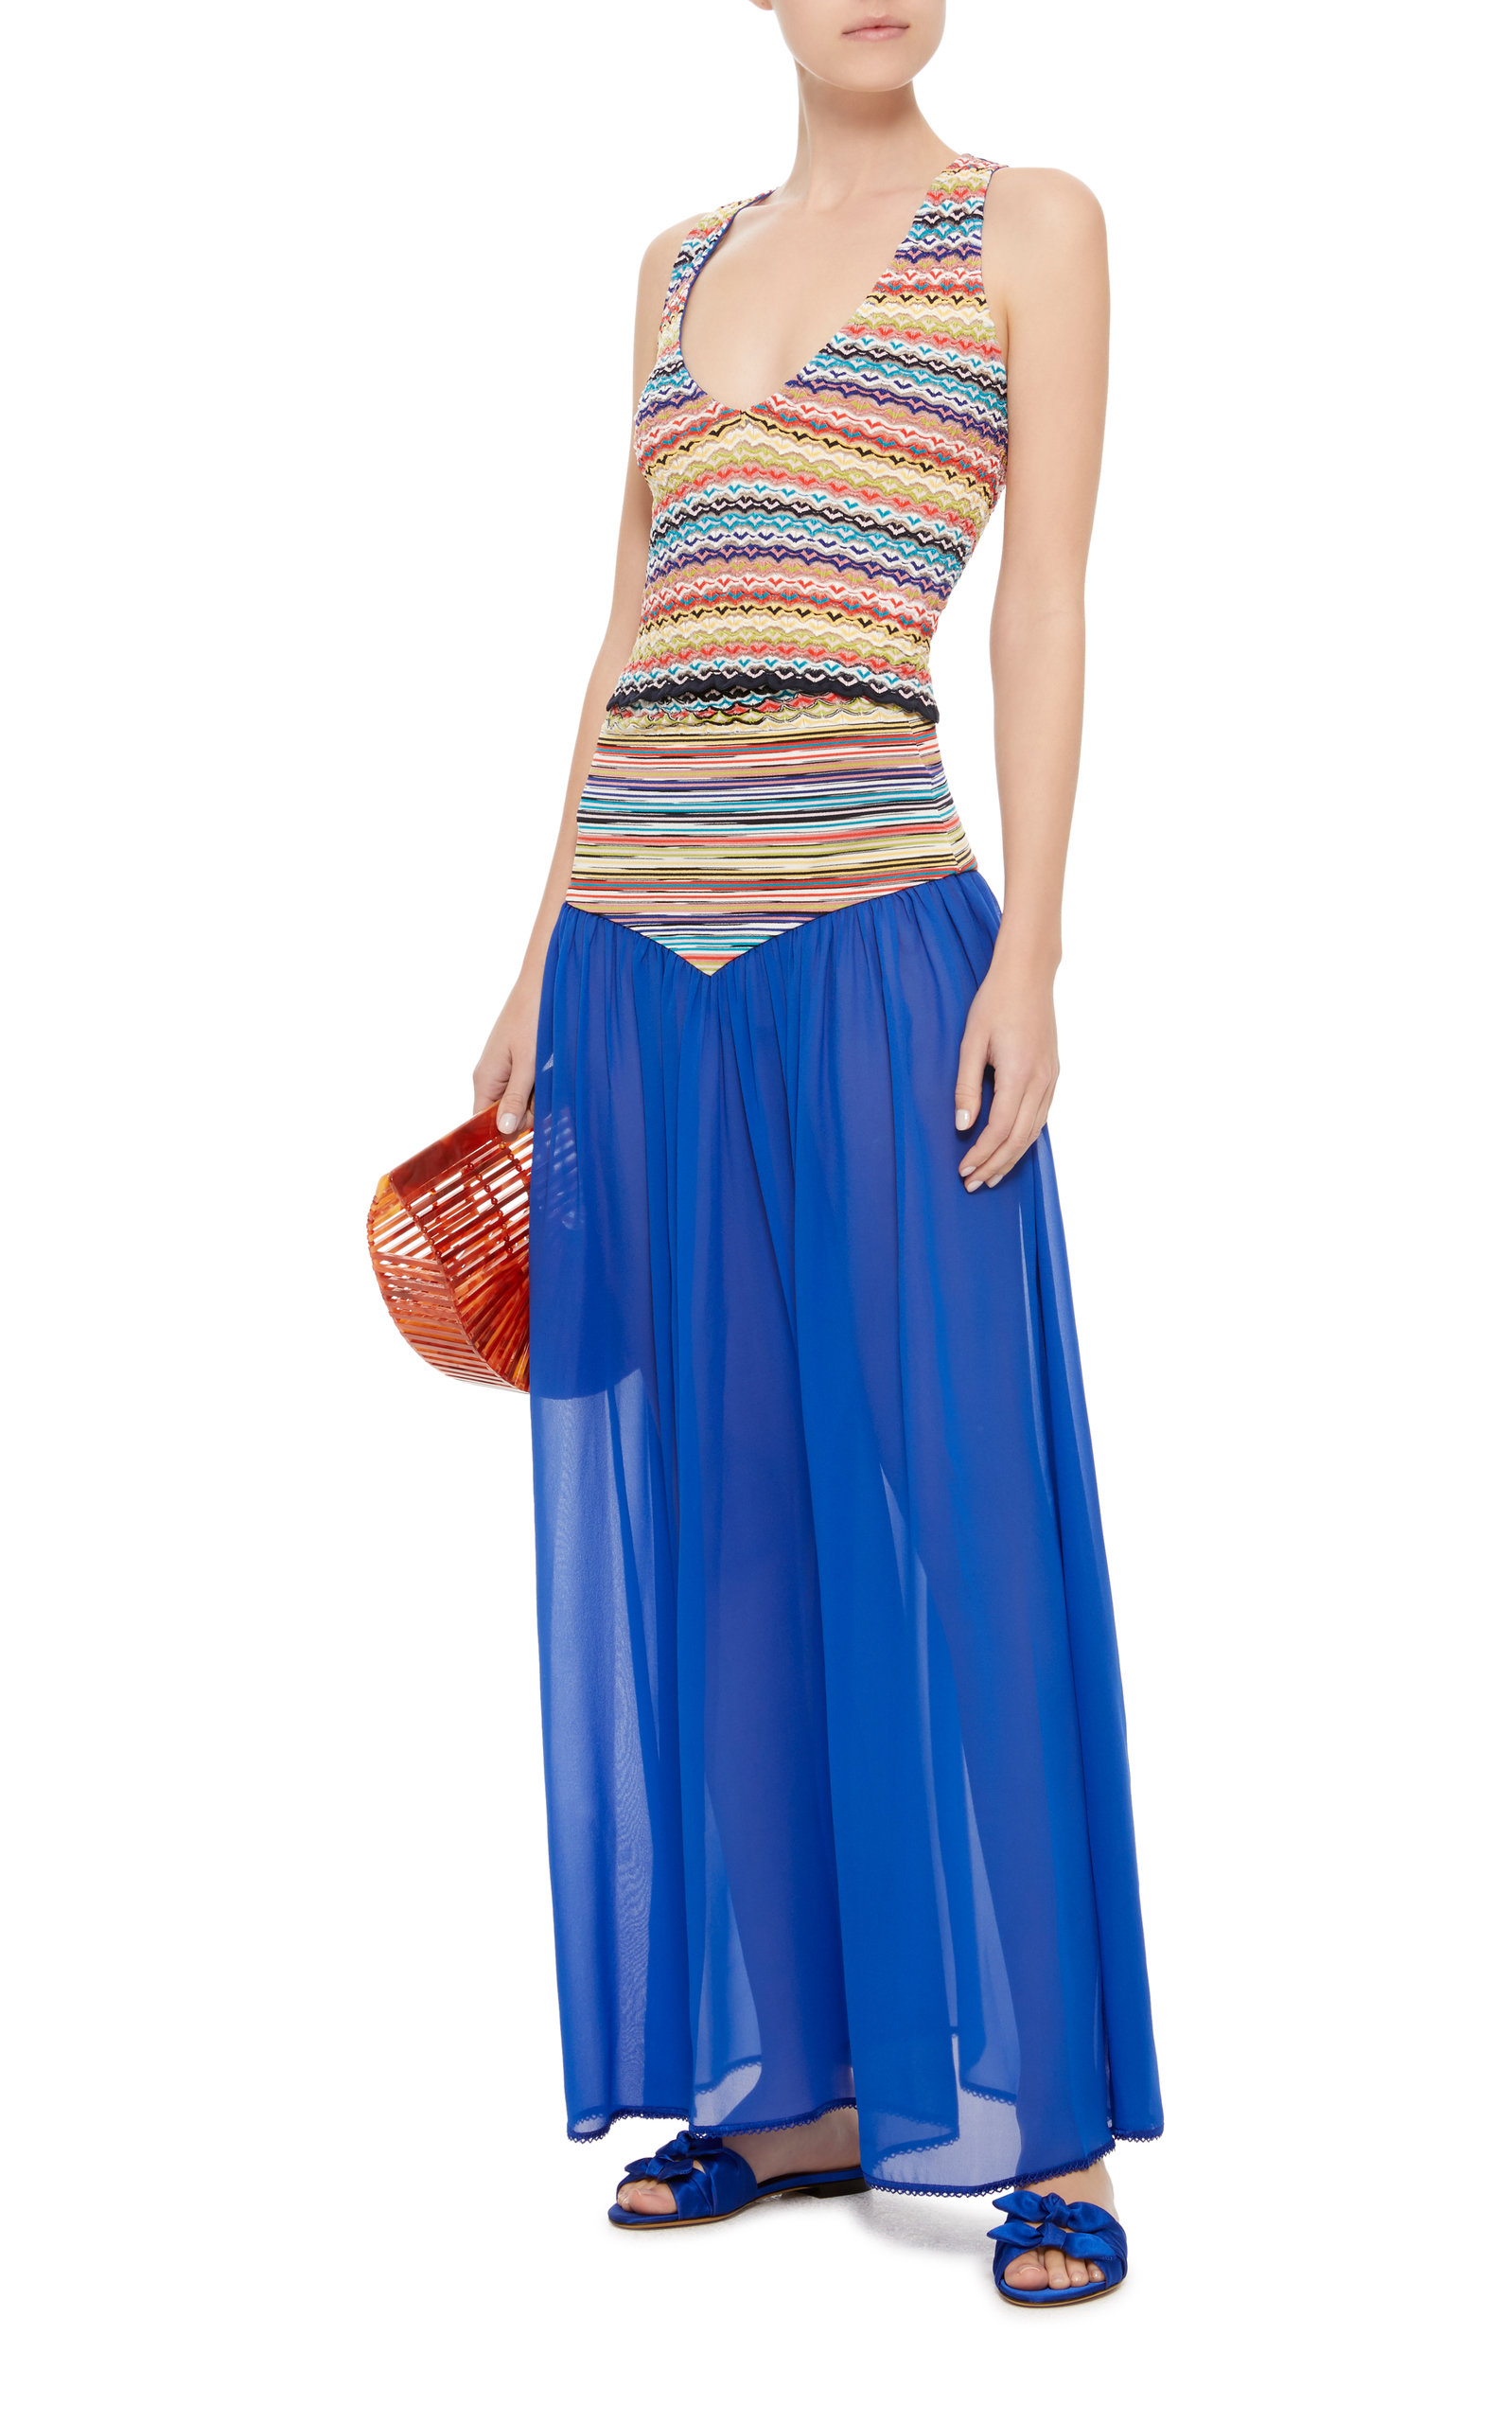 Crochet-Knit And Chiffon Maxi Skirt Missoni Buy Cheap Visit Free Shipping Real Buy Cheap Geniue Stockist Release Dates 2LJK06e